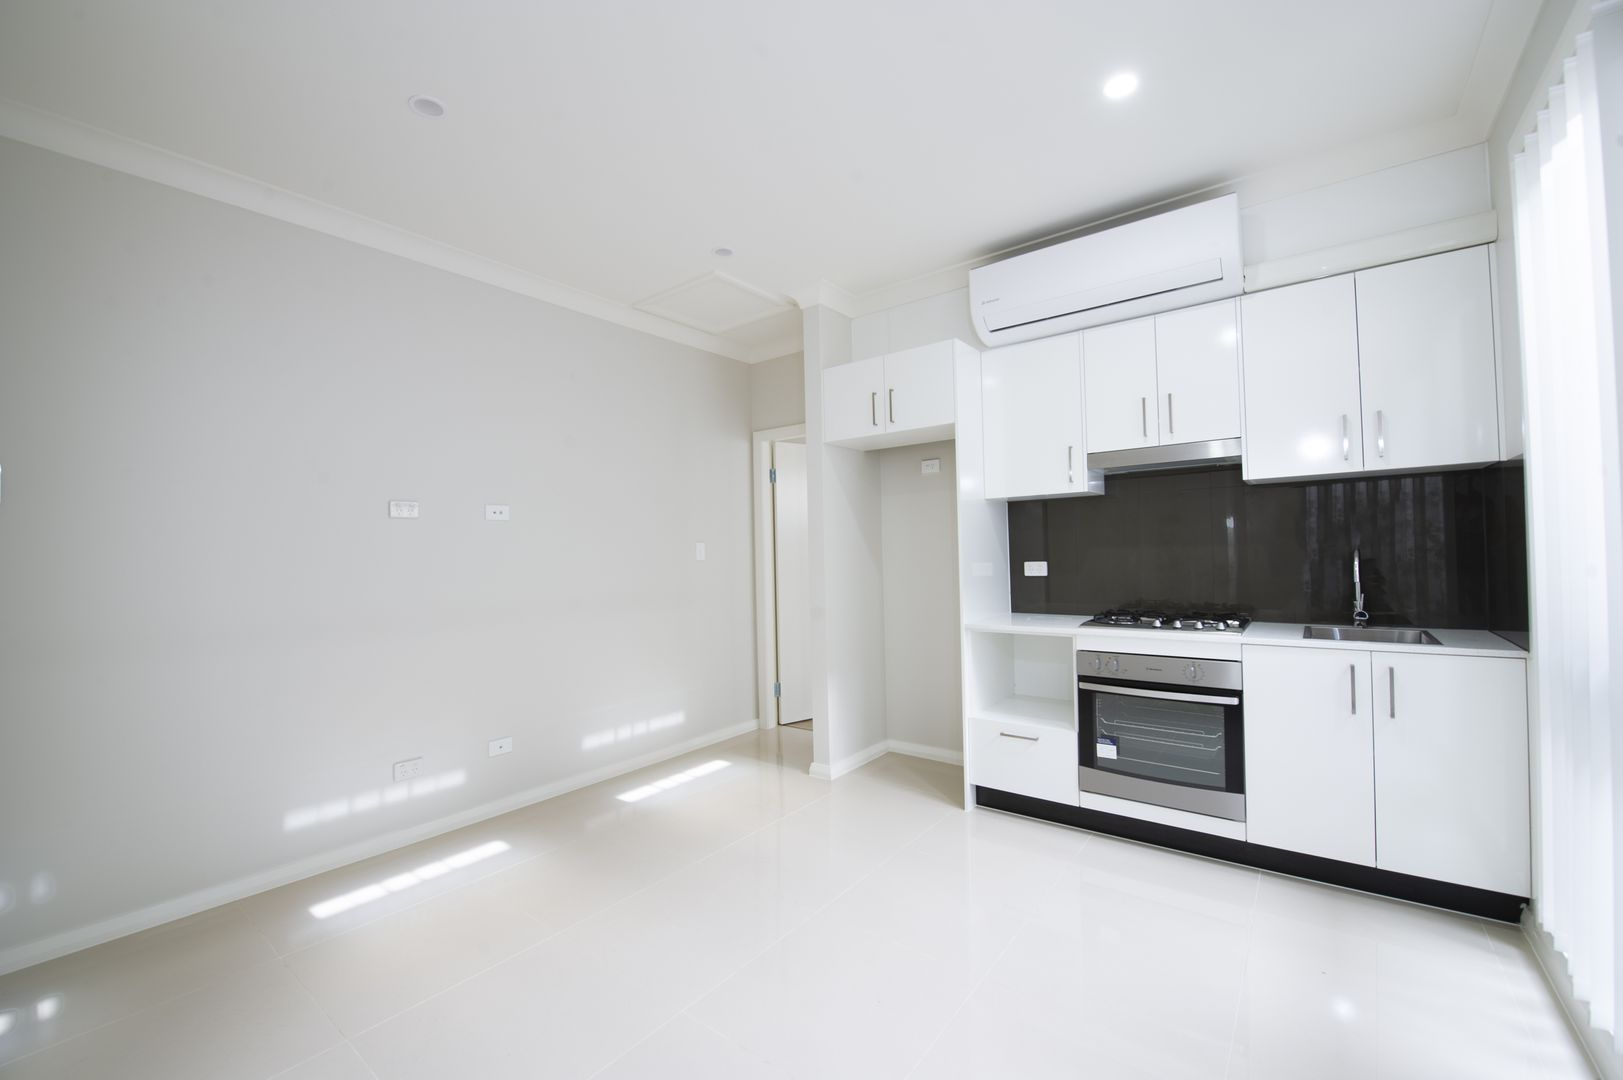 11A Dalby St, The Ponds NSW 2769, Image 0